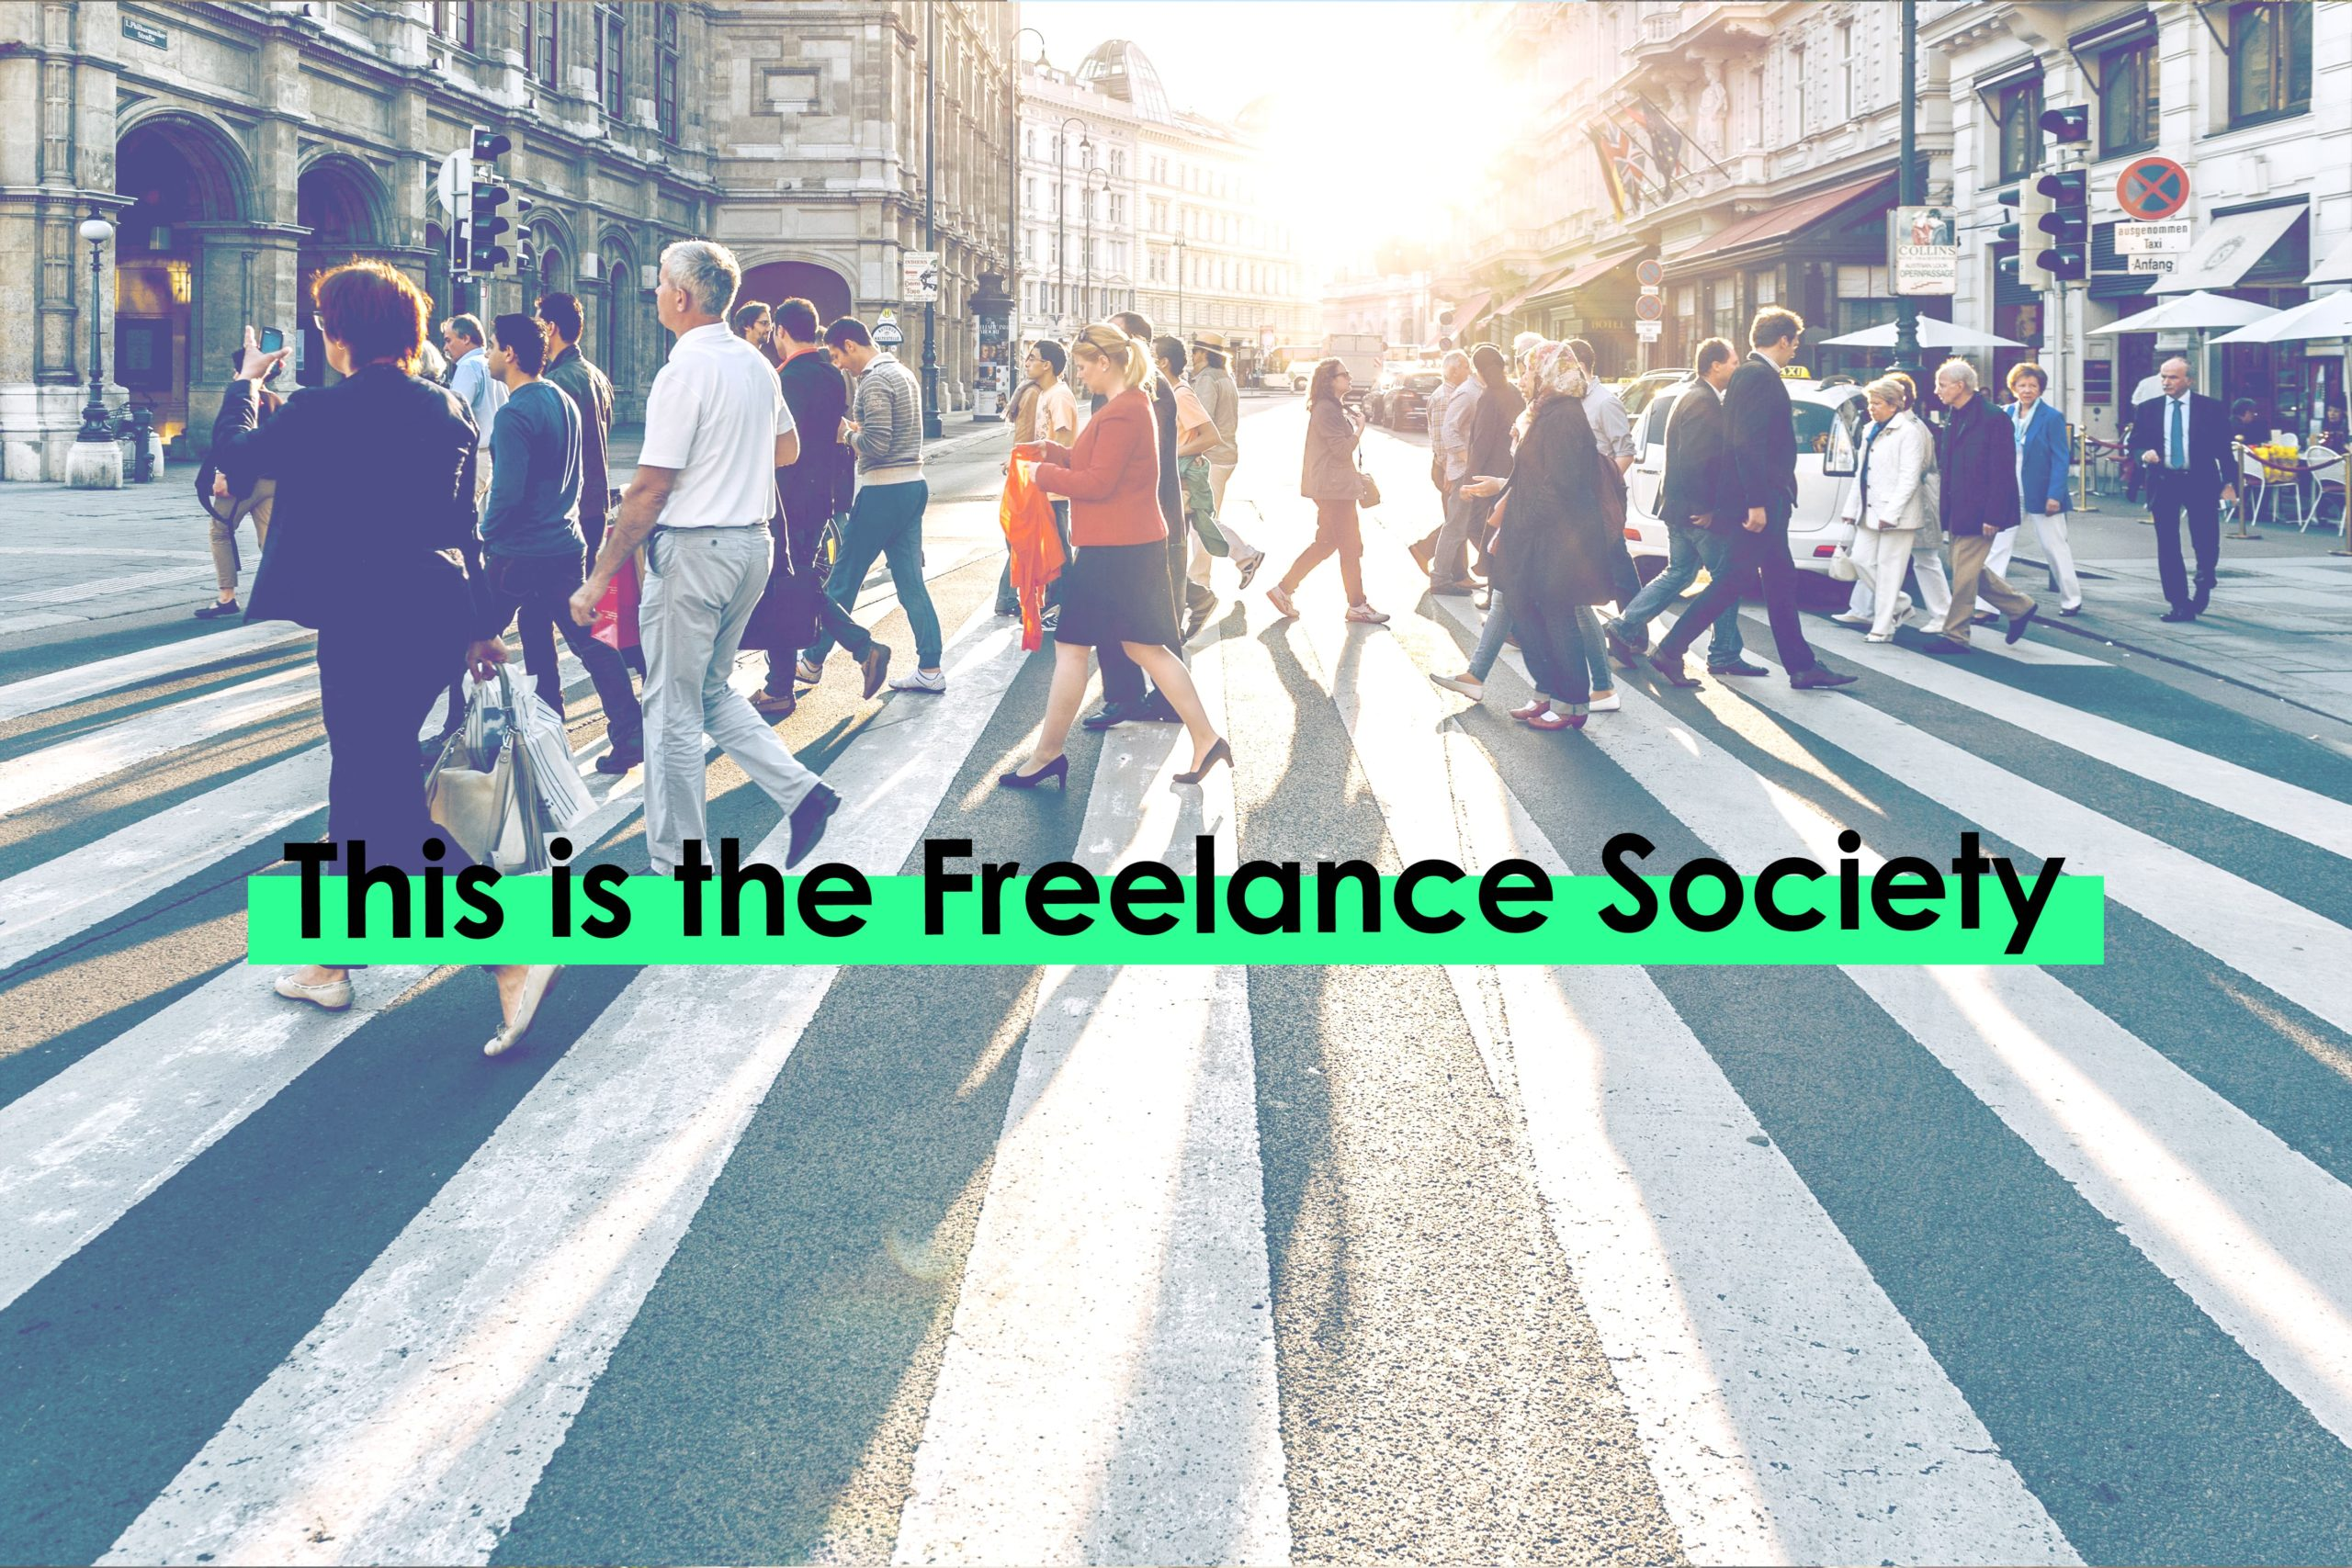 This is the Freelance Society